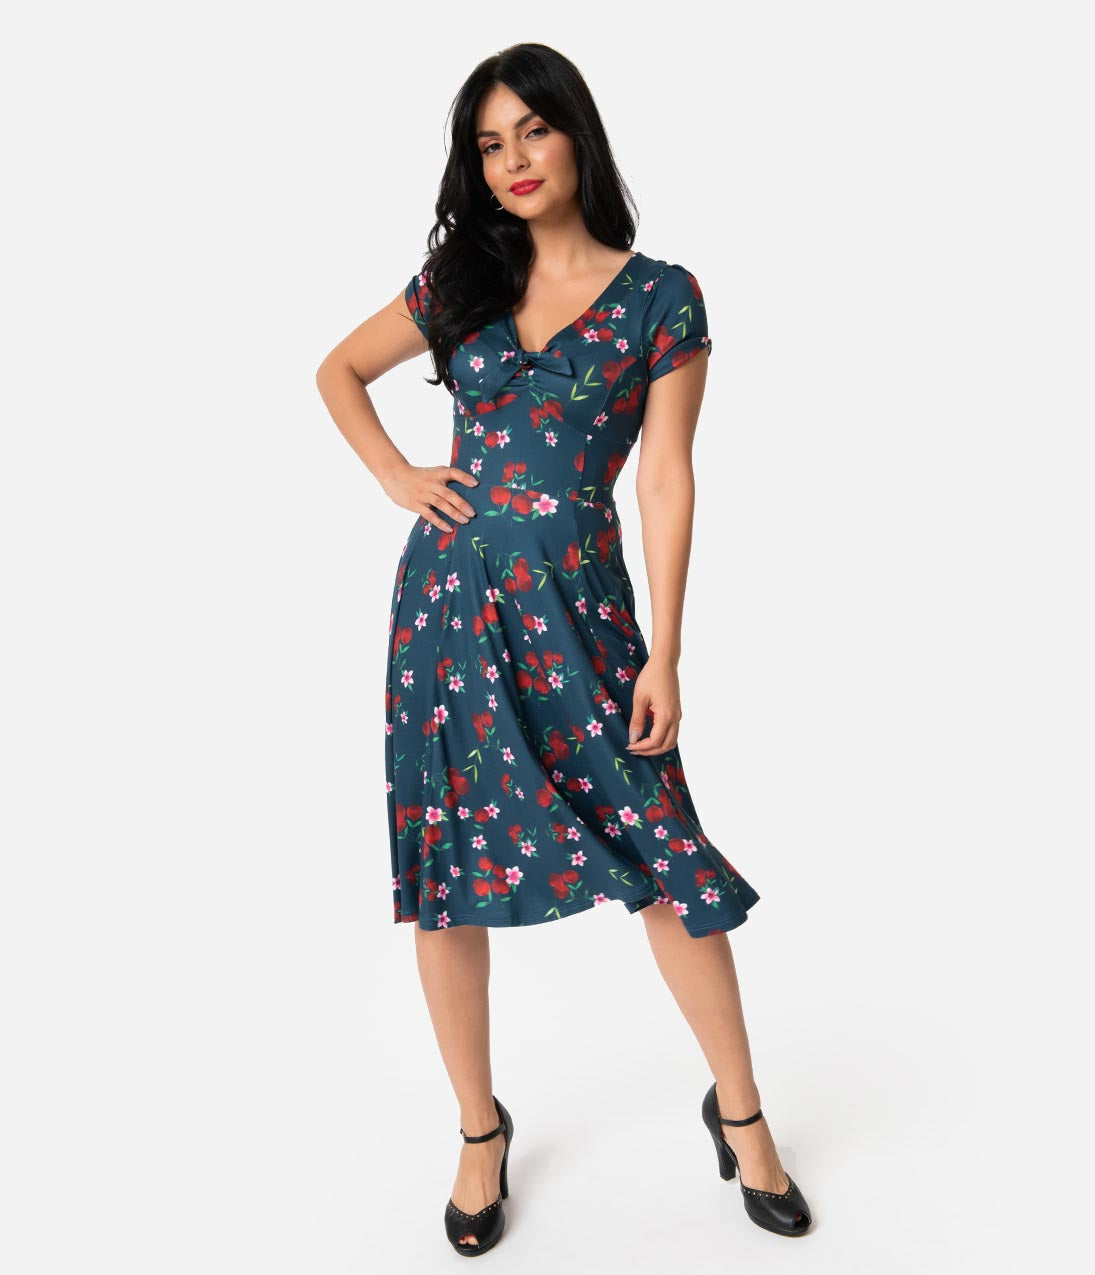 Swing Dance Clothing You Can Dance In Unique Vintage 1940S Style Navy  Cherry Floral Short Sleeve Natalie Swing Dress $88.00 AT vintagedancer.com